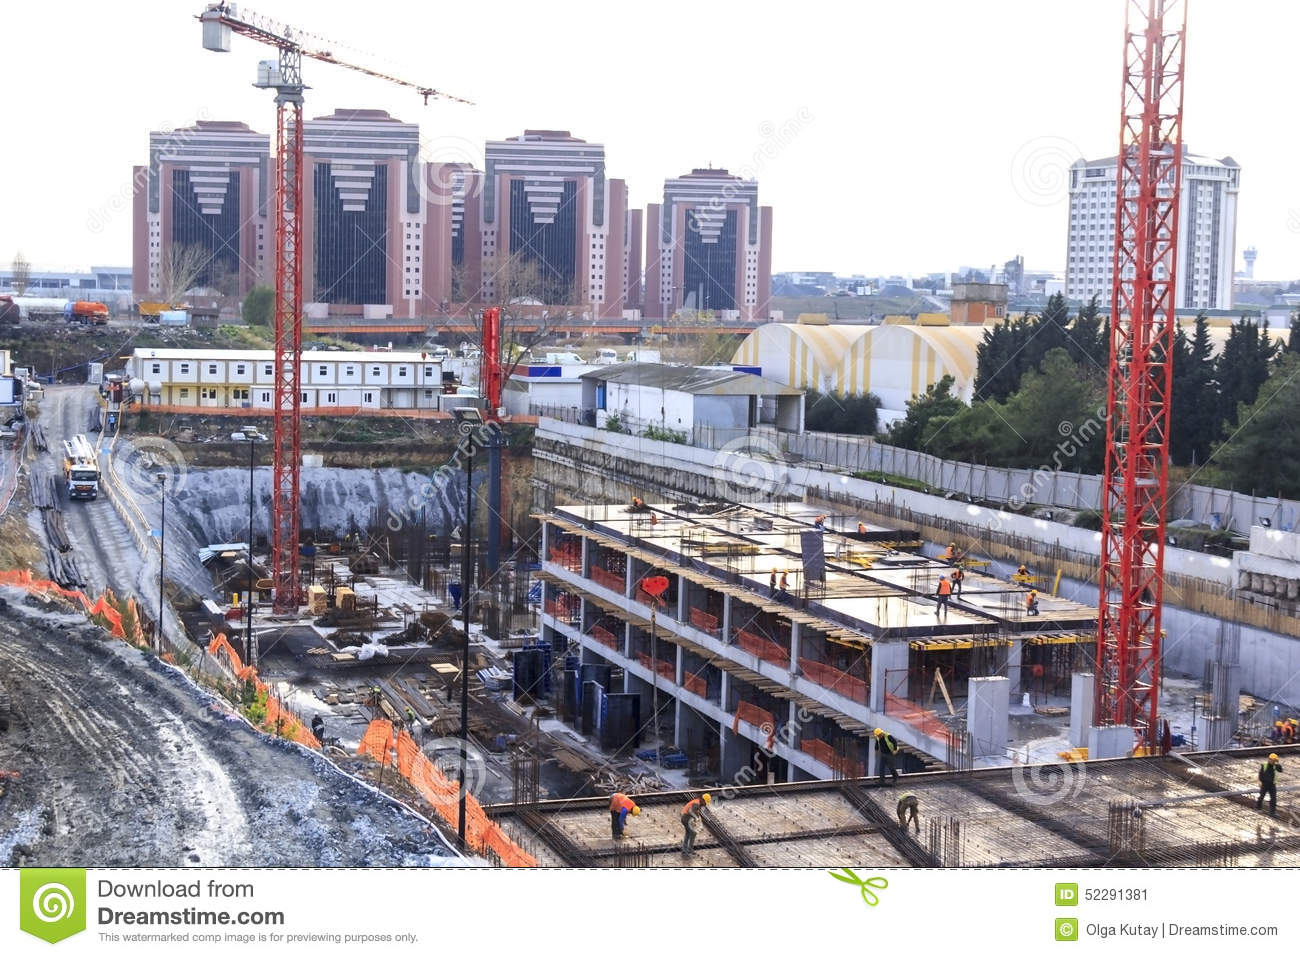 Overview of a construction site